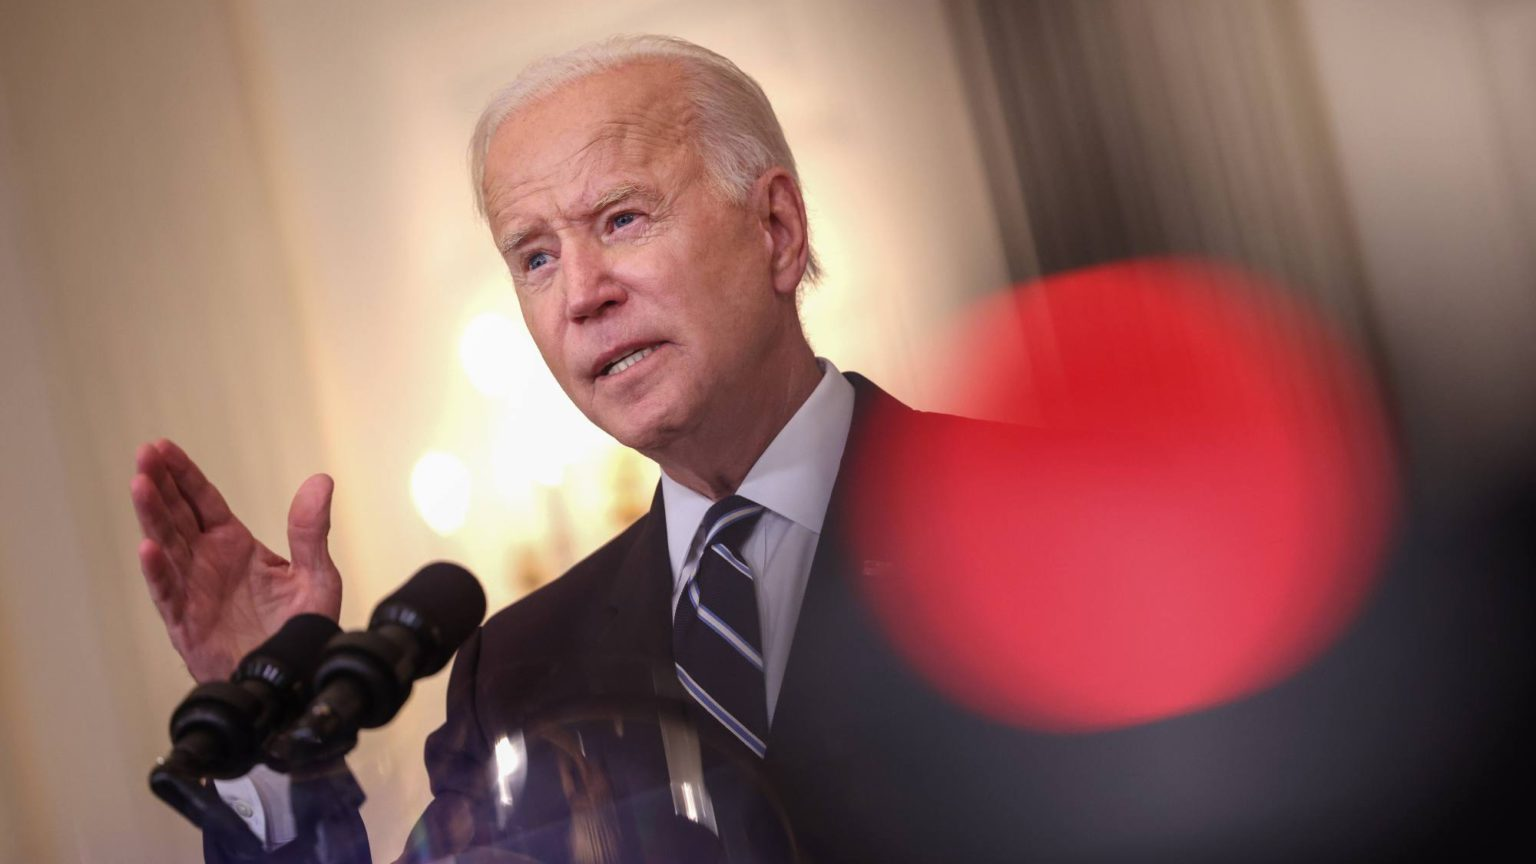 Biden is playing a dangerous game with China